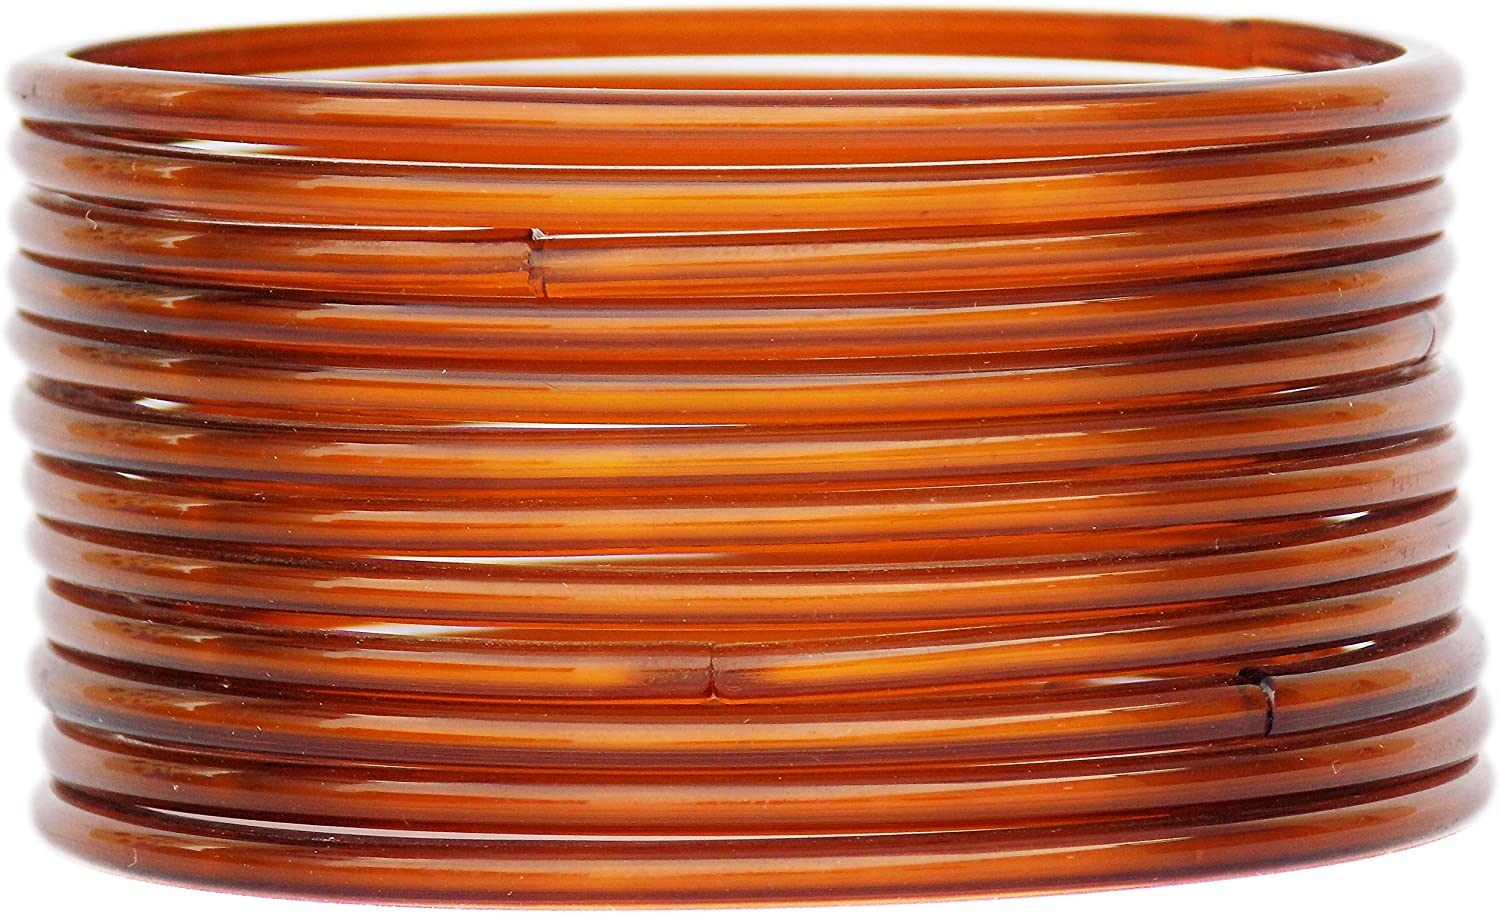 JD'Z COLLECTION Ethnic Fashion Jewelry Daily Wear Indian Designer Glass Plain Bangle Set For Girls & Women Churi Bracelet Traditional Bollywood Bangles Set Of 12 (Brown 2.6)